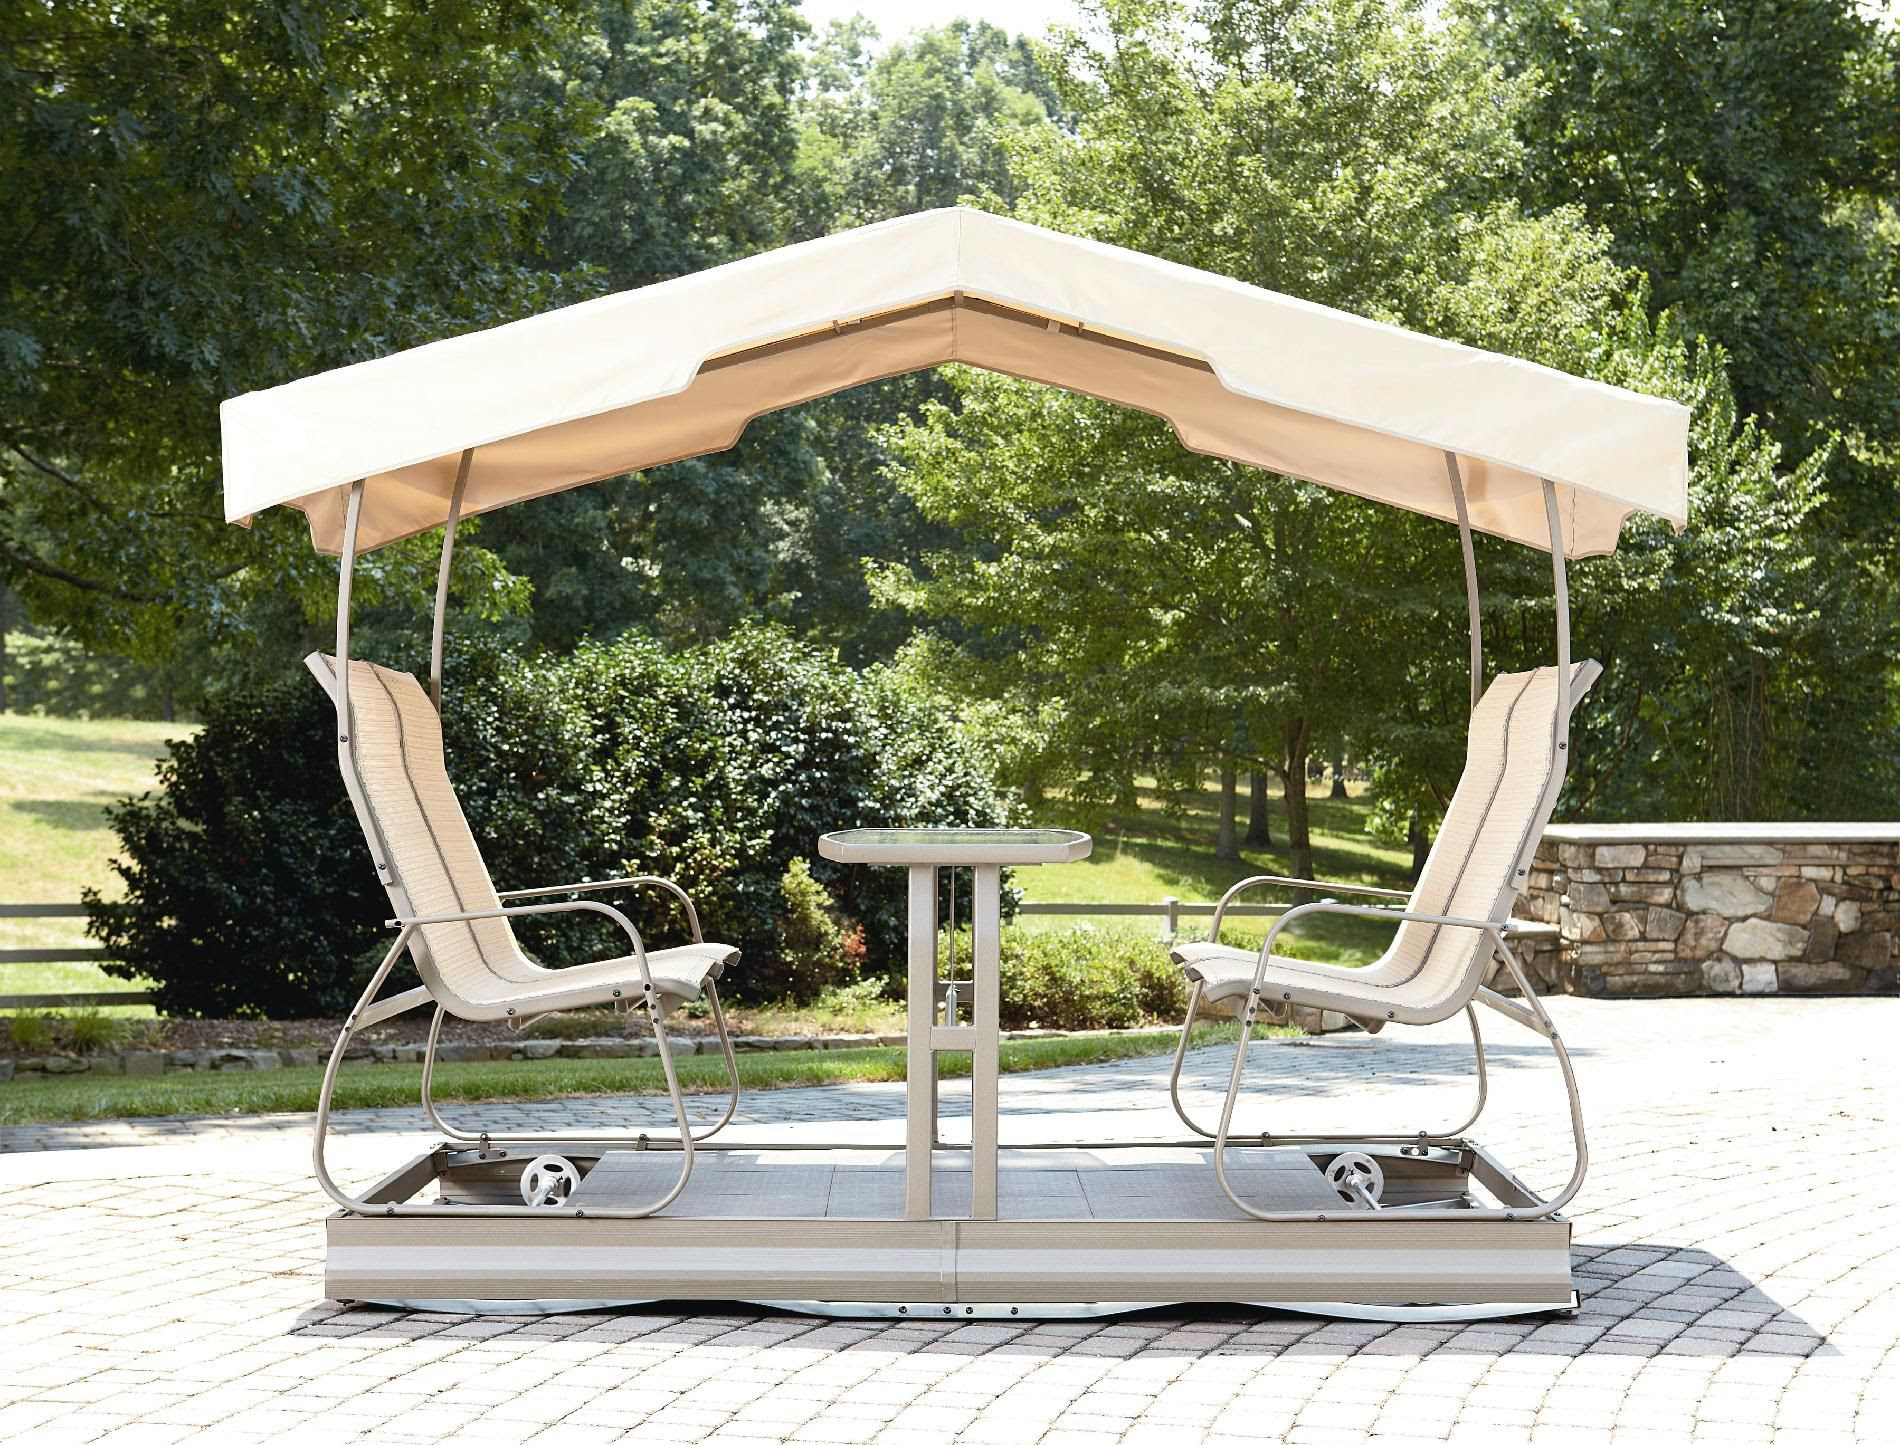 Garden Oasis 2-Seat Promo Swing - Outdoor Living - Patio Furniture ...